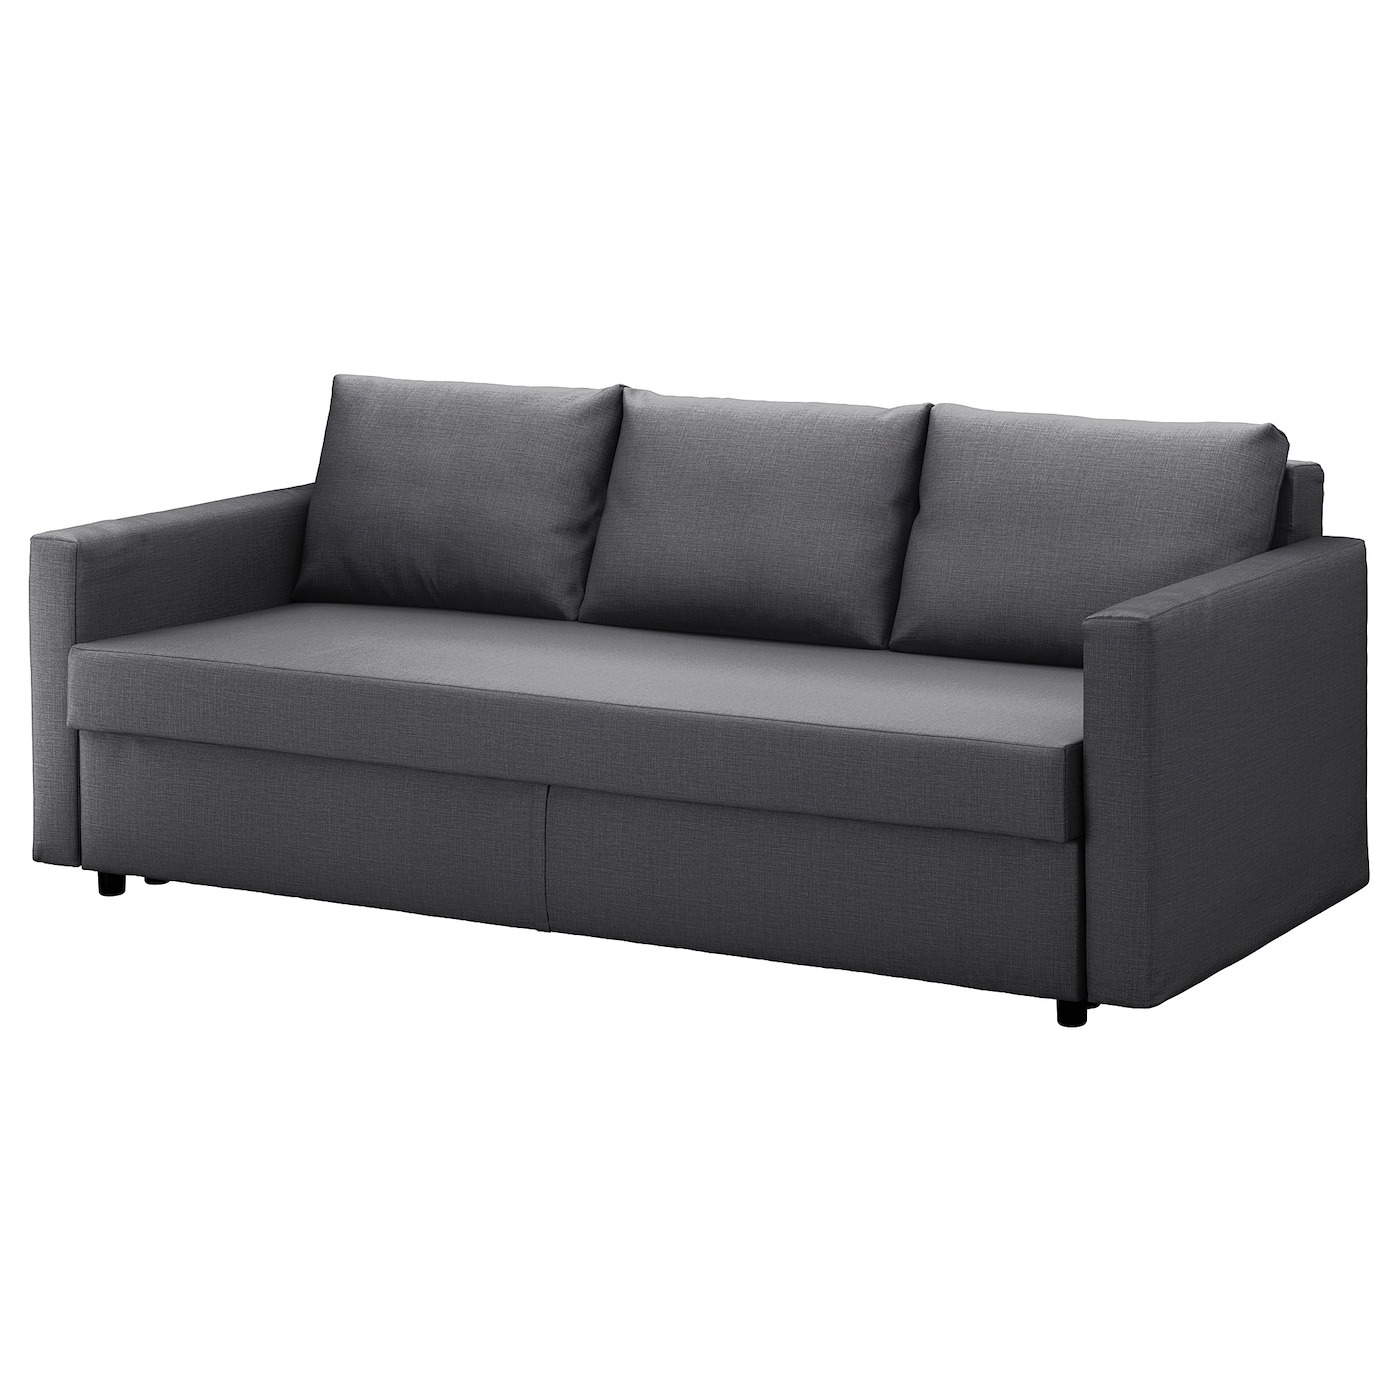 FRIHETEN Three seat sofa bed Skiftebo dark grey IKEA